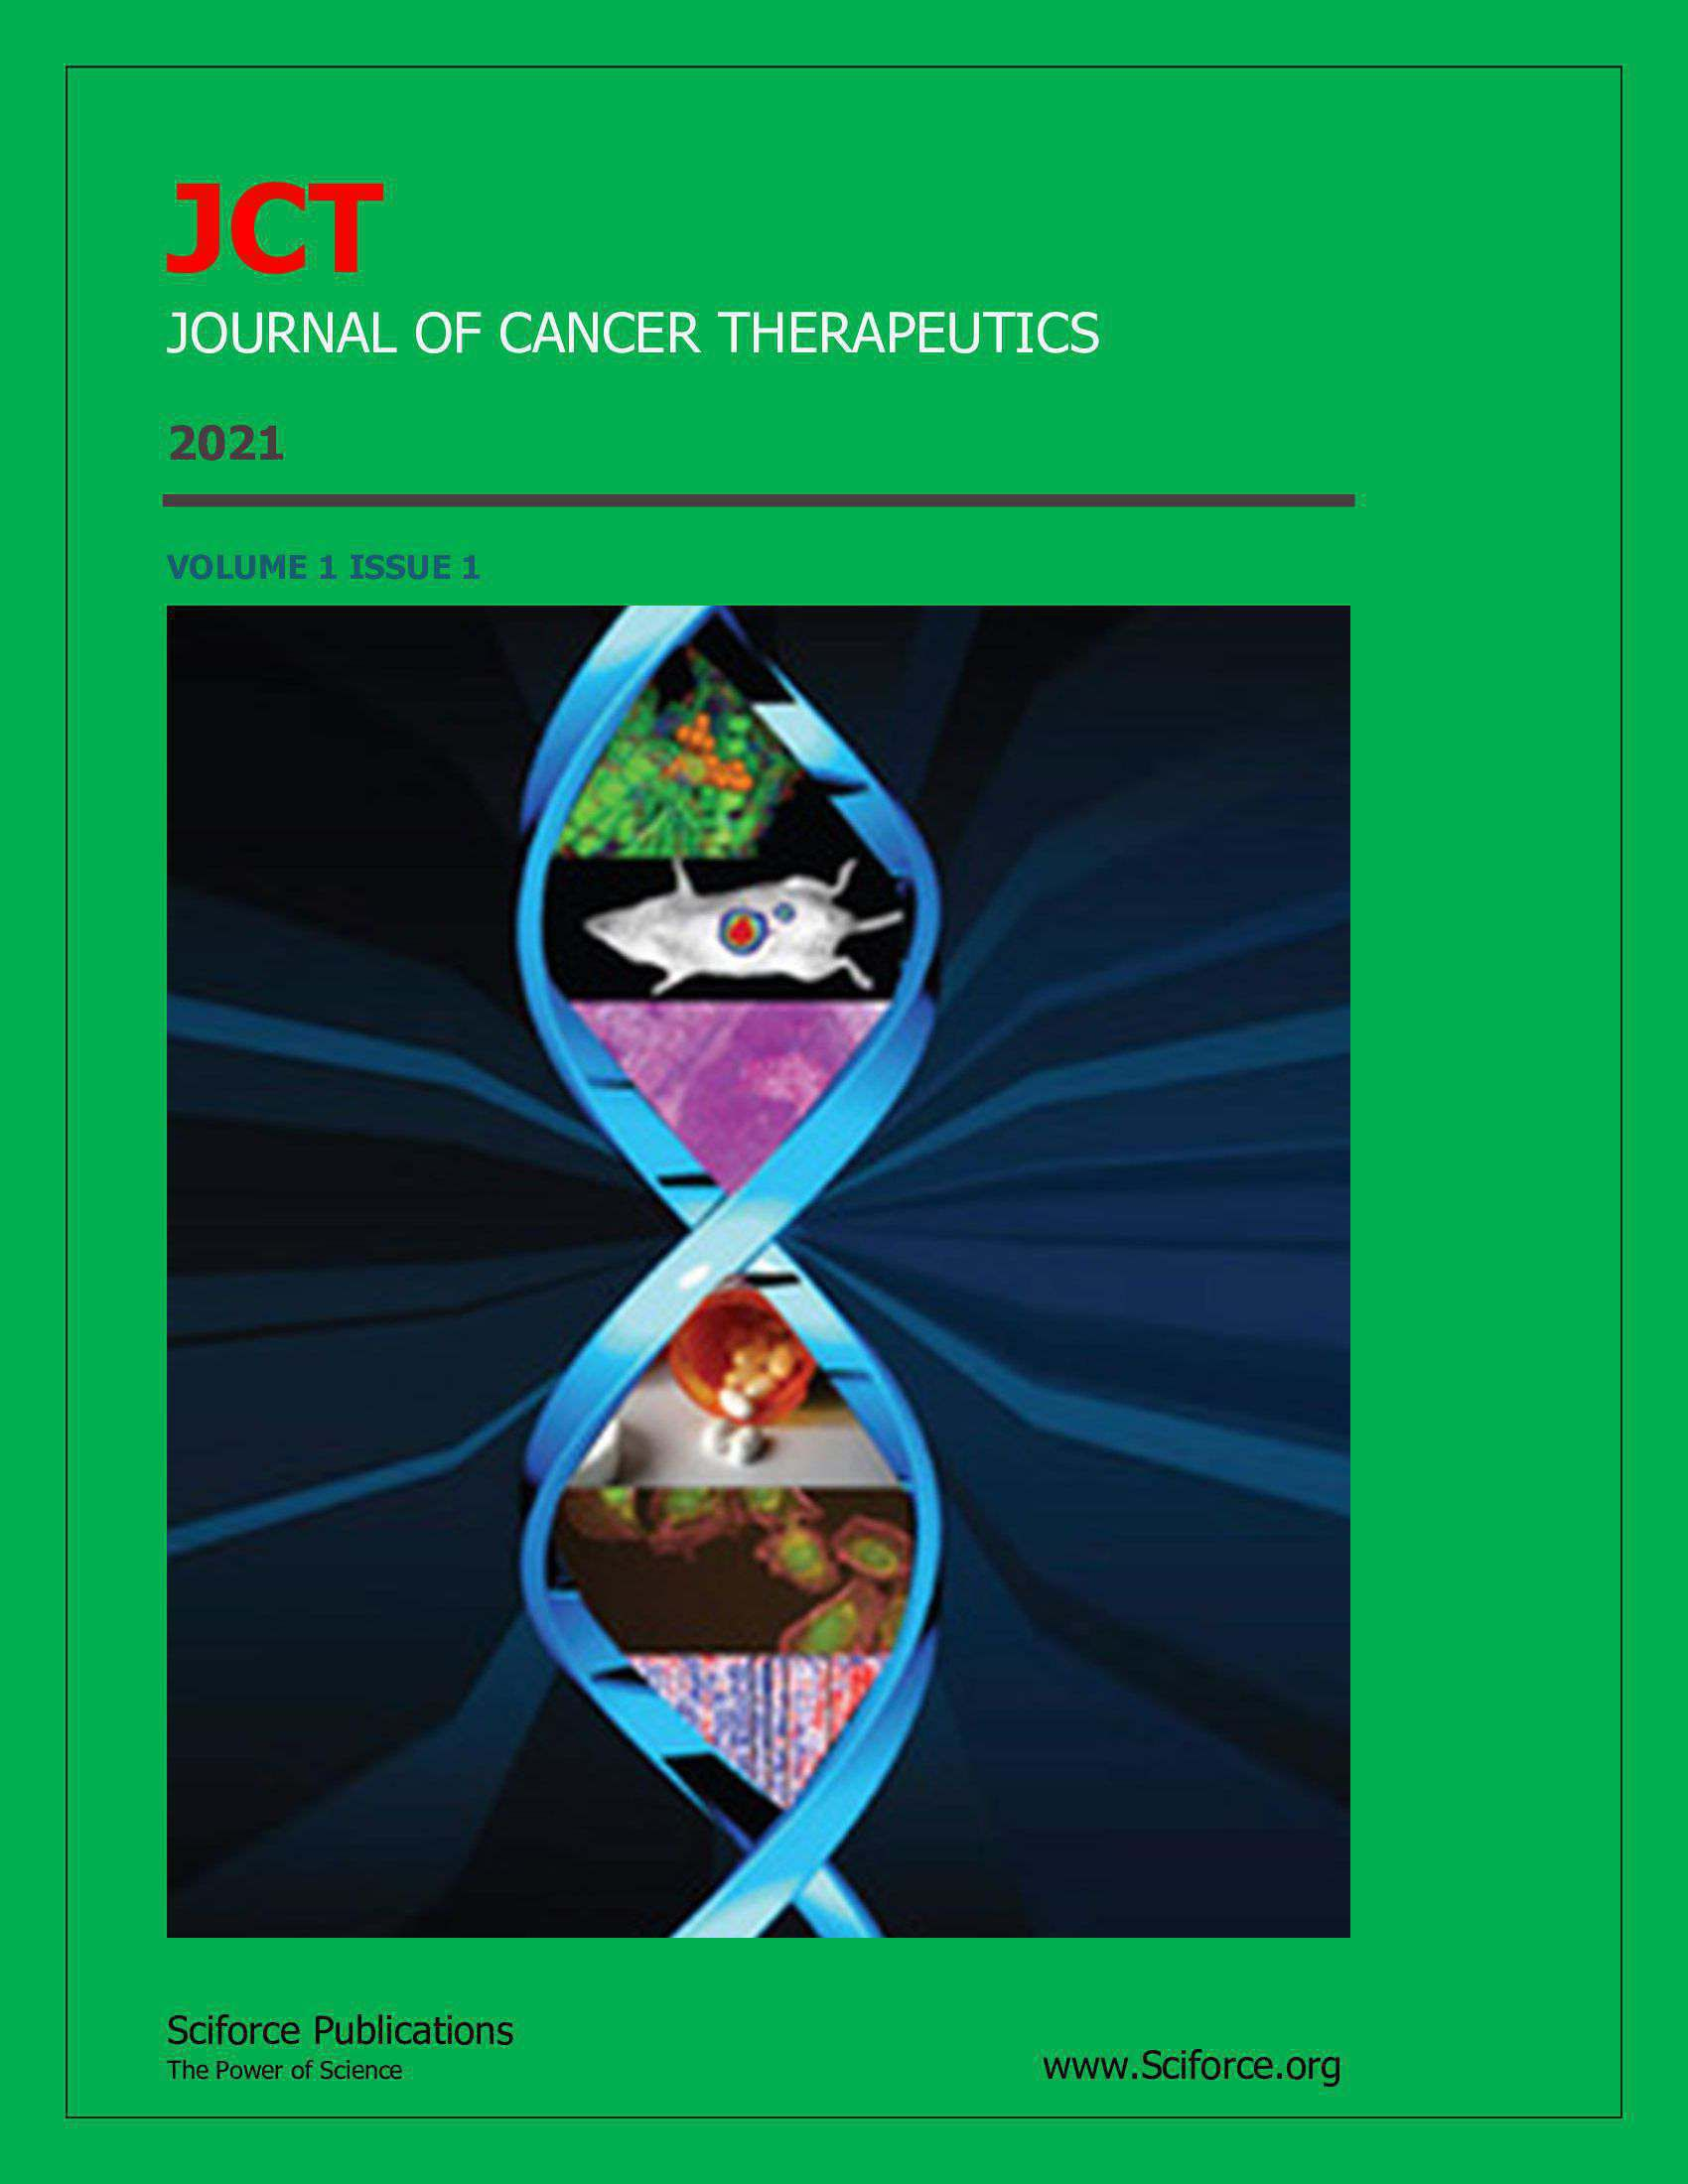 Journal of Cancer Therapeutics